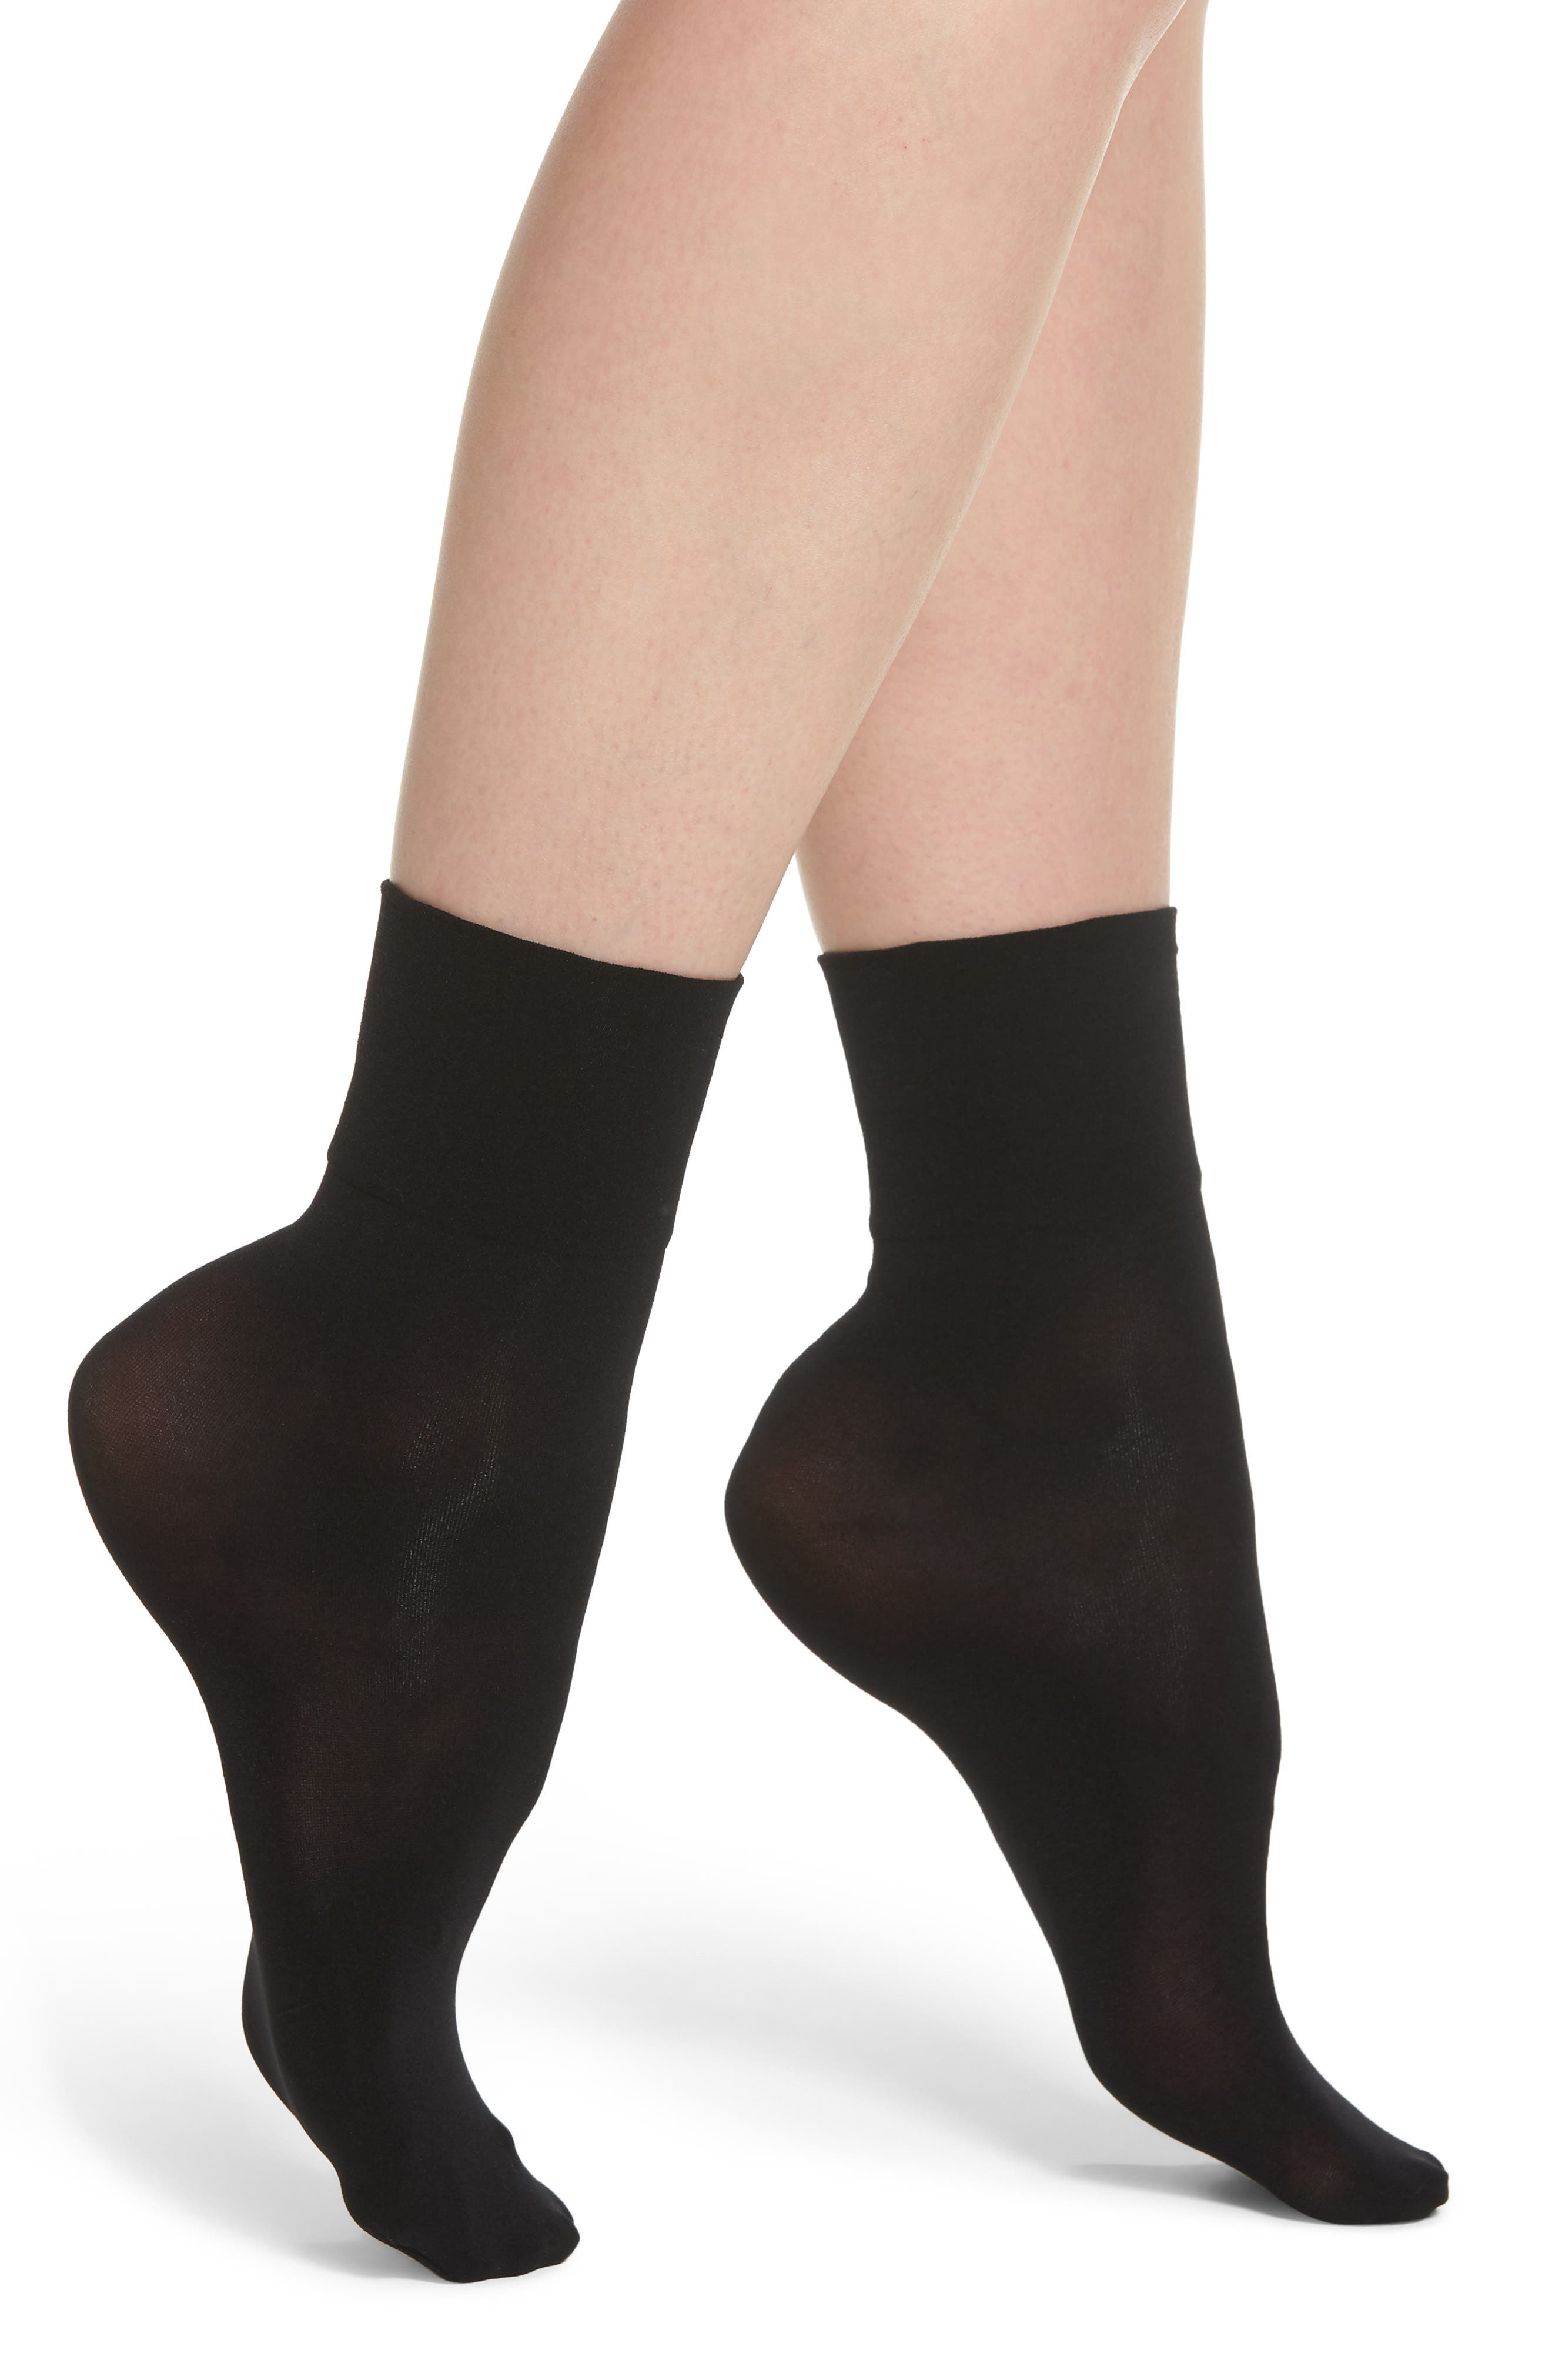 Opaque Anklet Socks,                         Main,                         color, 001